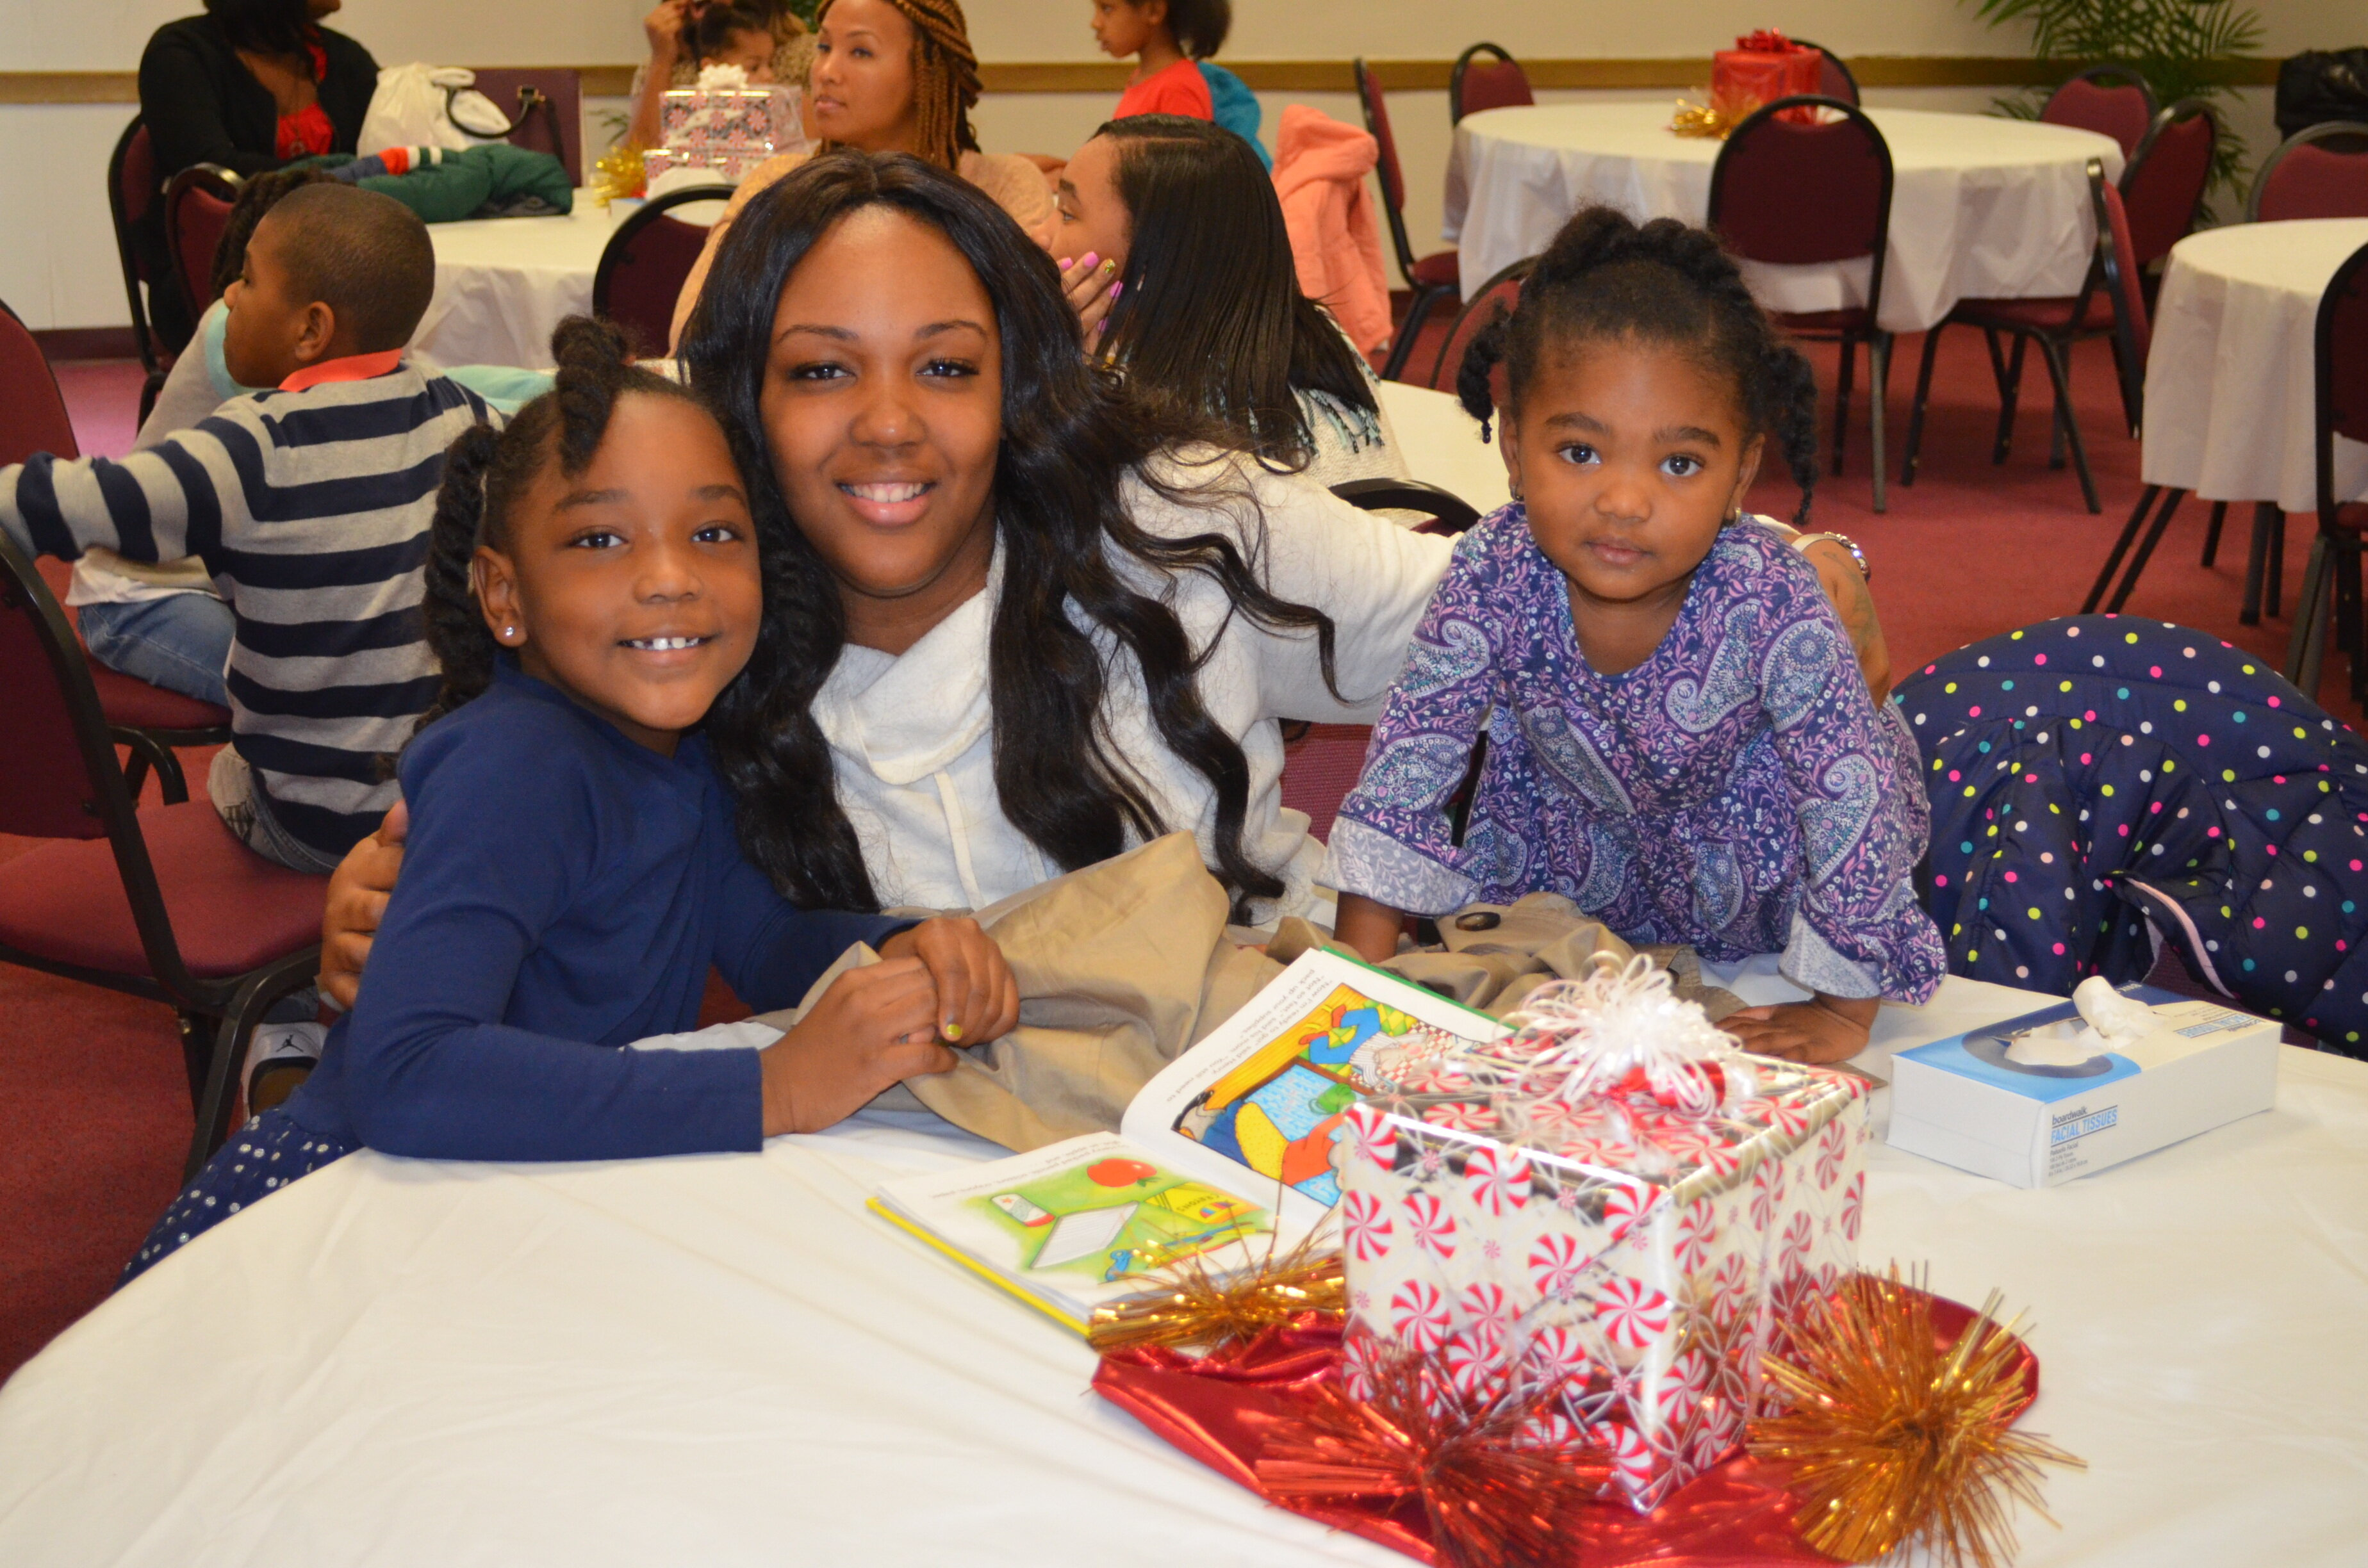 World Overcomers Church has hosted previous events for single mothers in their own congregation. This year's Christmas expo event is the first event for single moms that is open to the broader community. (Terrance Davis)